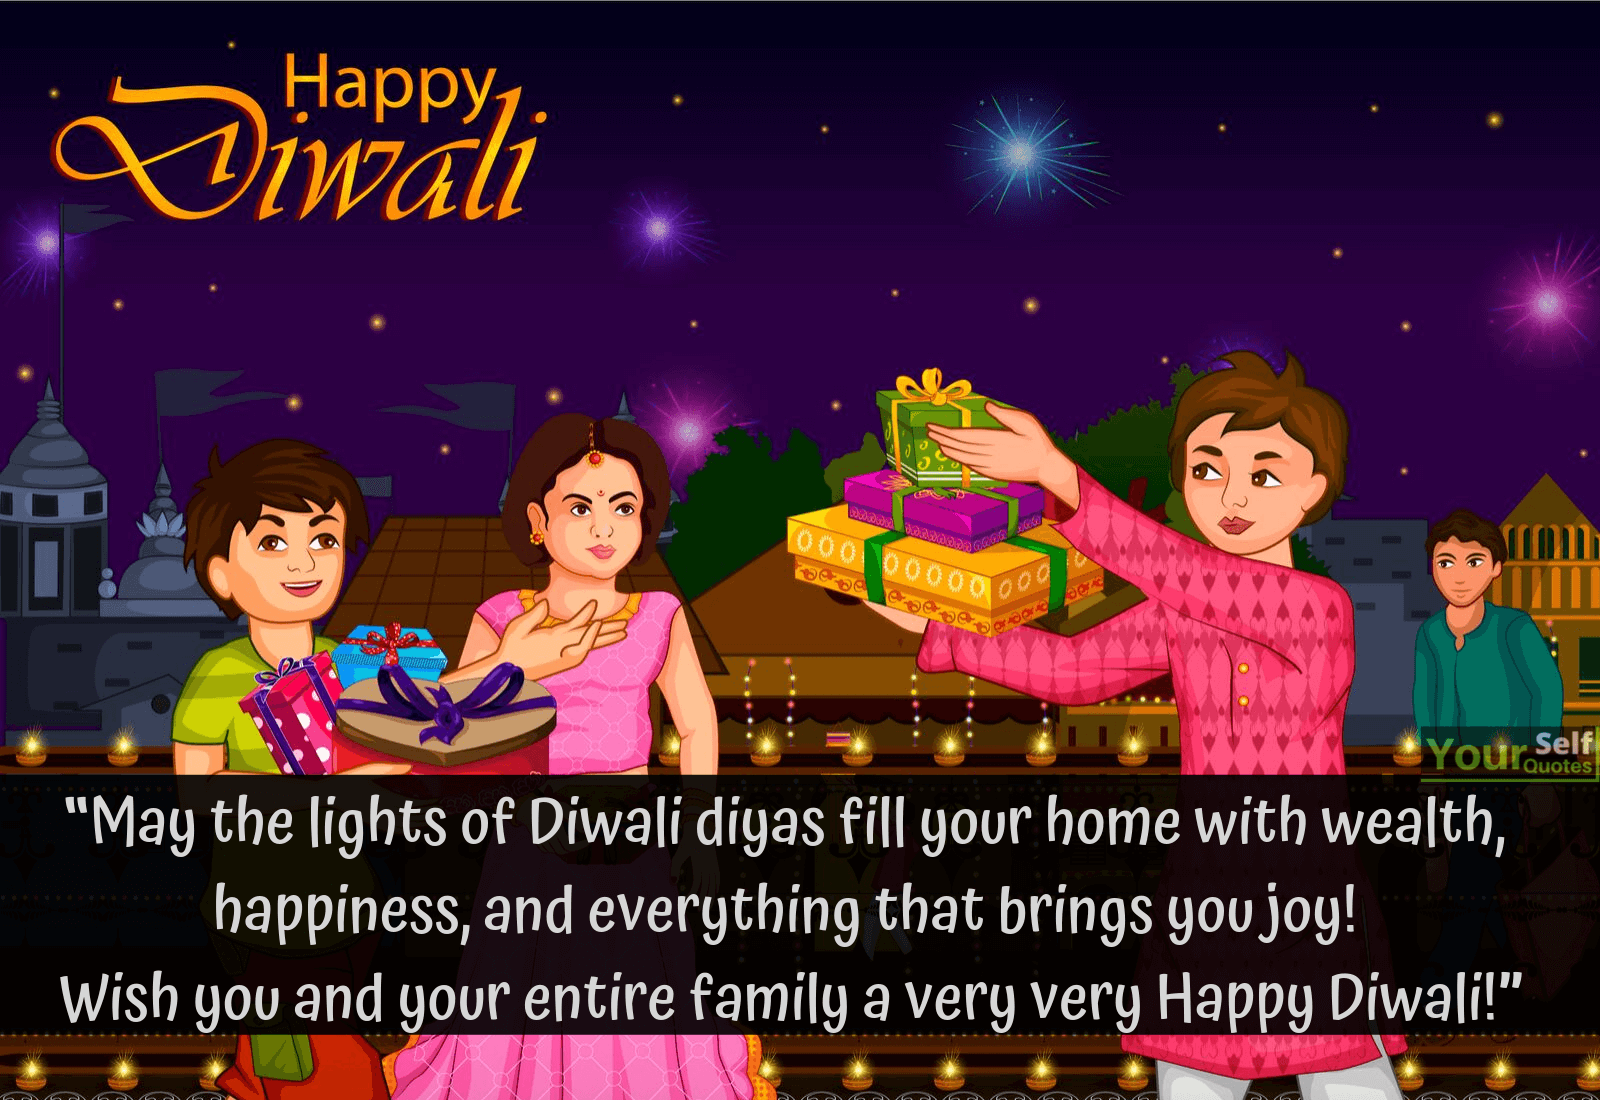 Diwali Wishes For Family